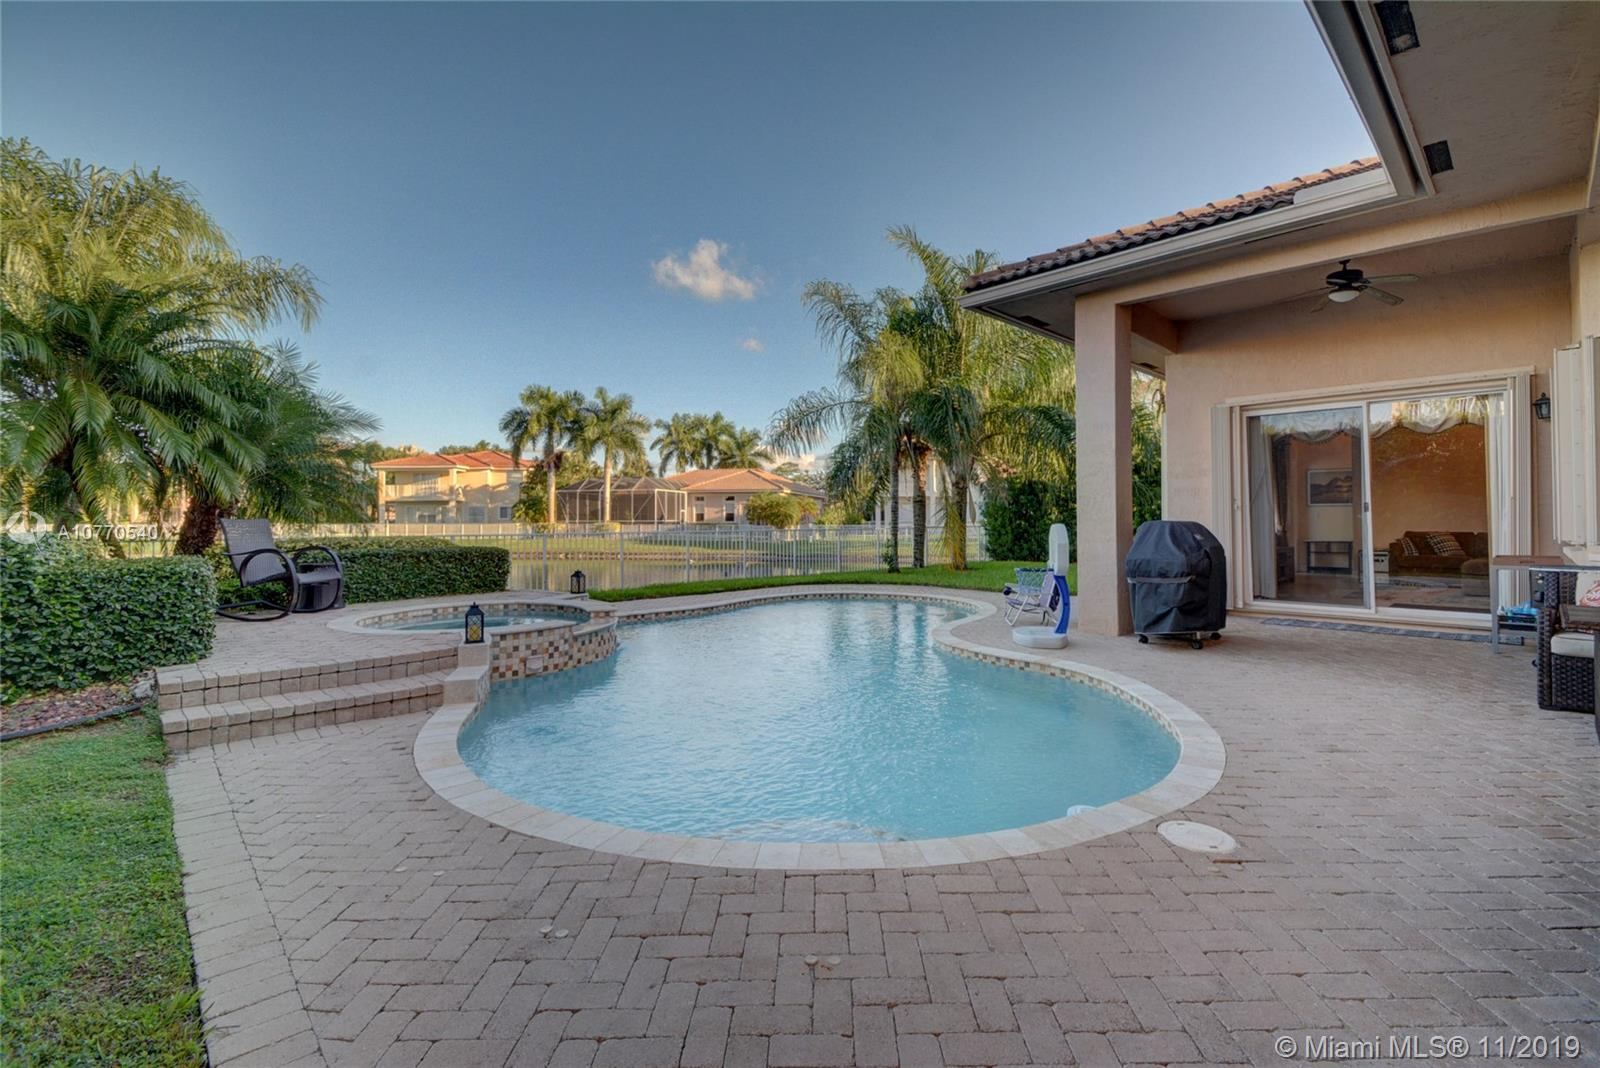 Listing A10770540 - Large Photo # 29